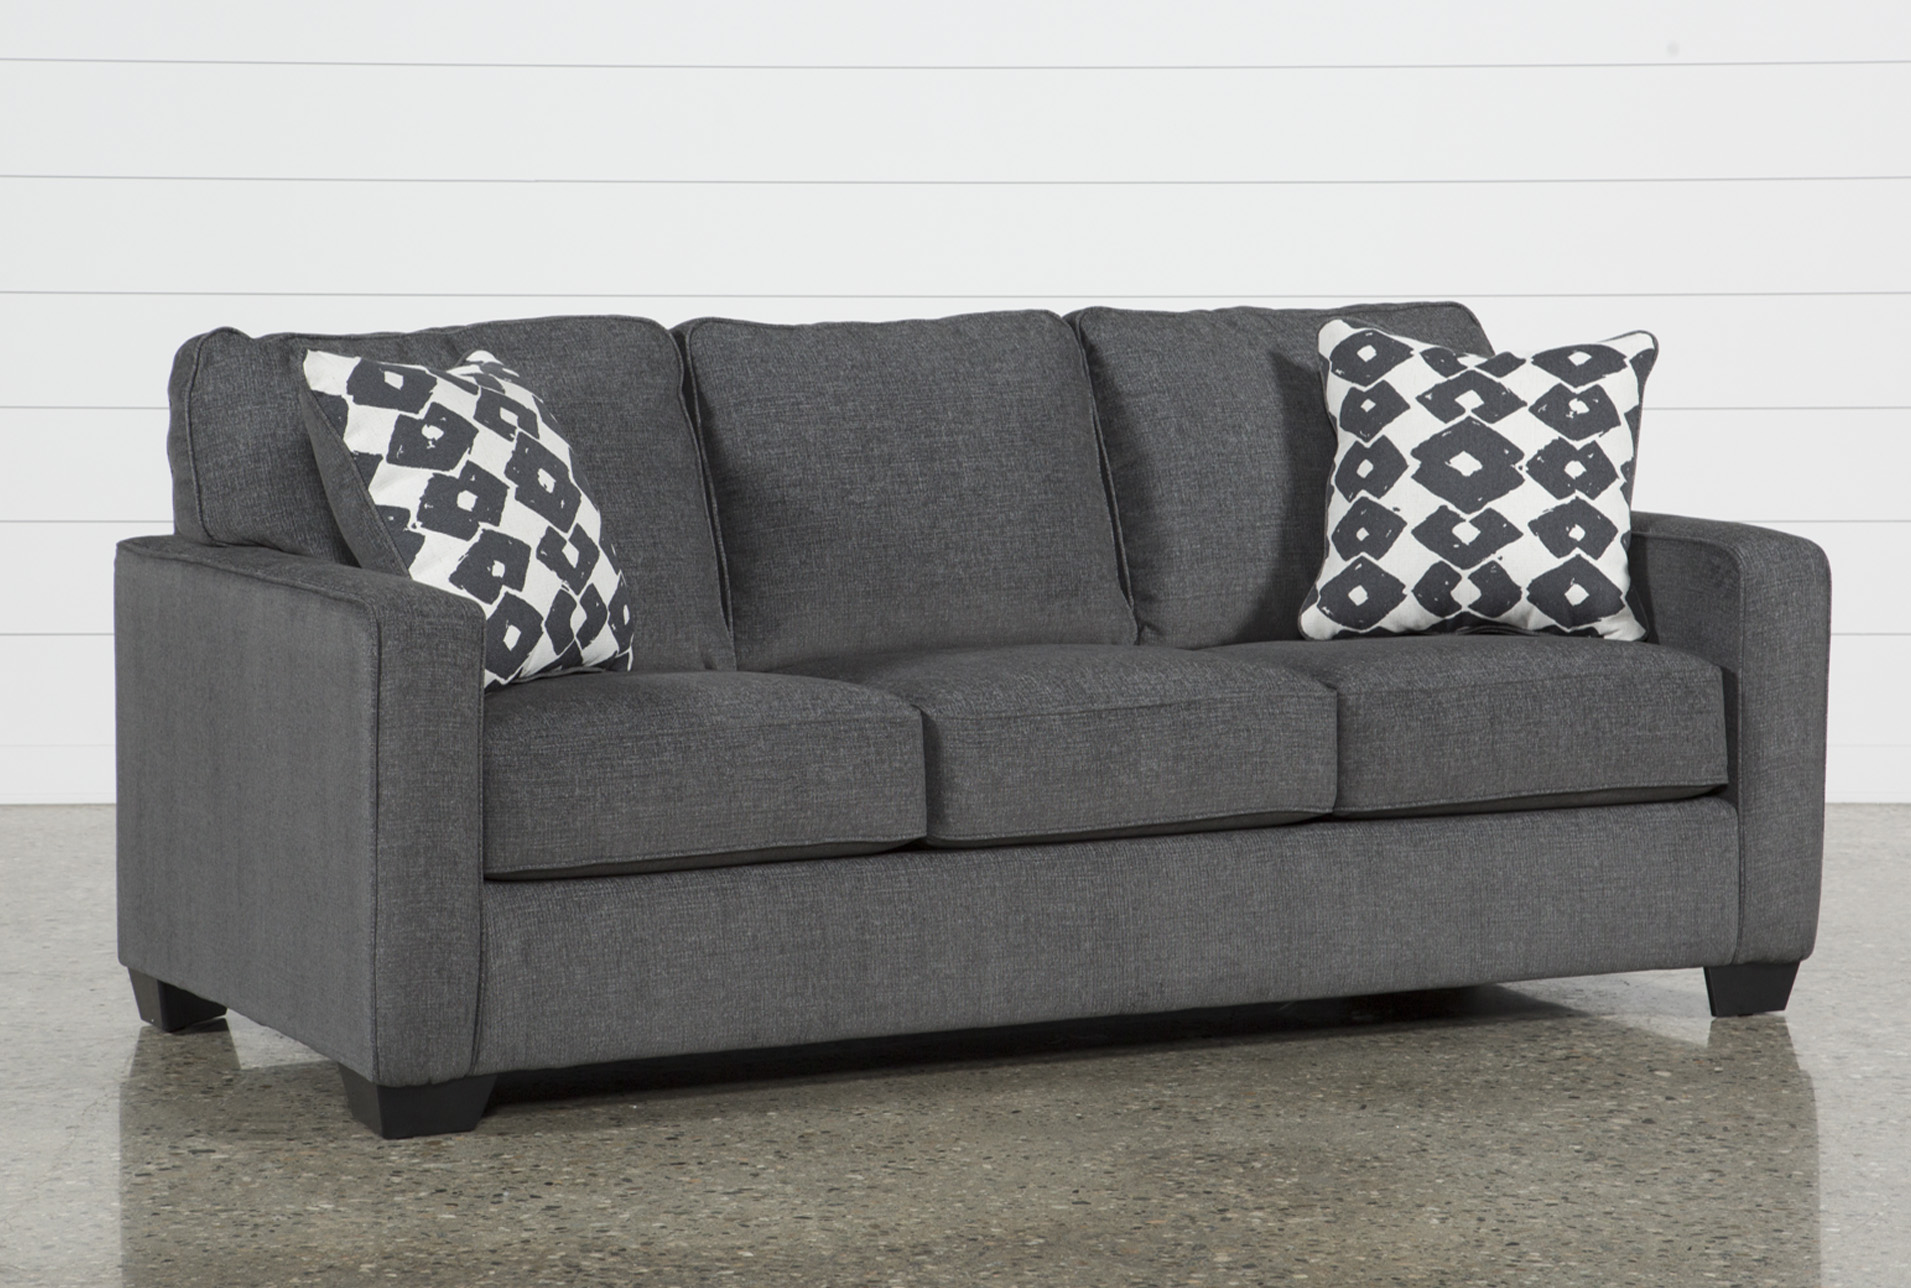 Sofa Beds   Free Assembly with Delivery   Living Spaces Turdur Queen Sofa Sleeper